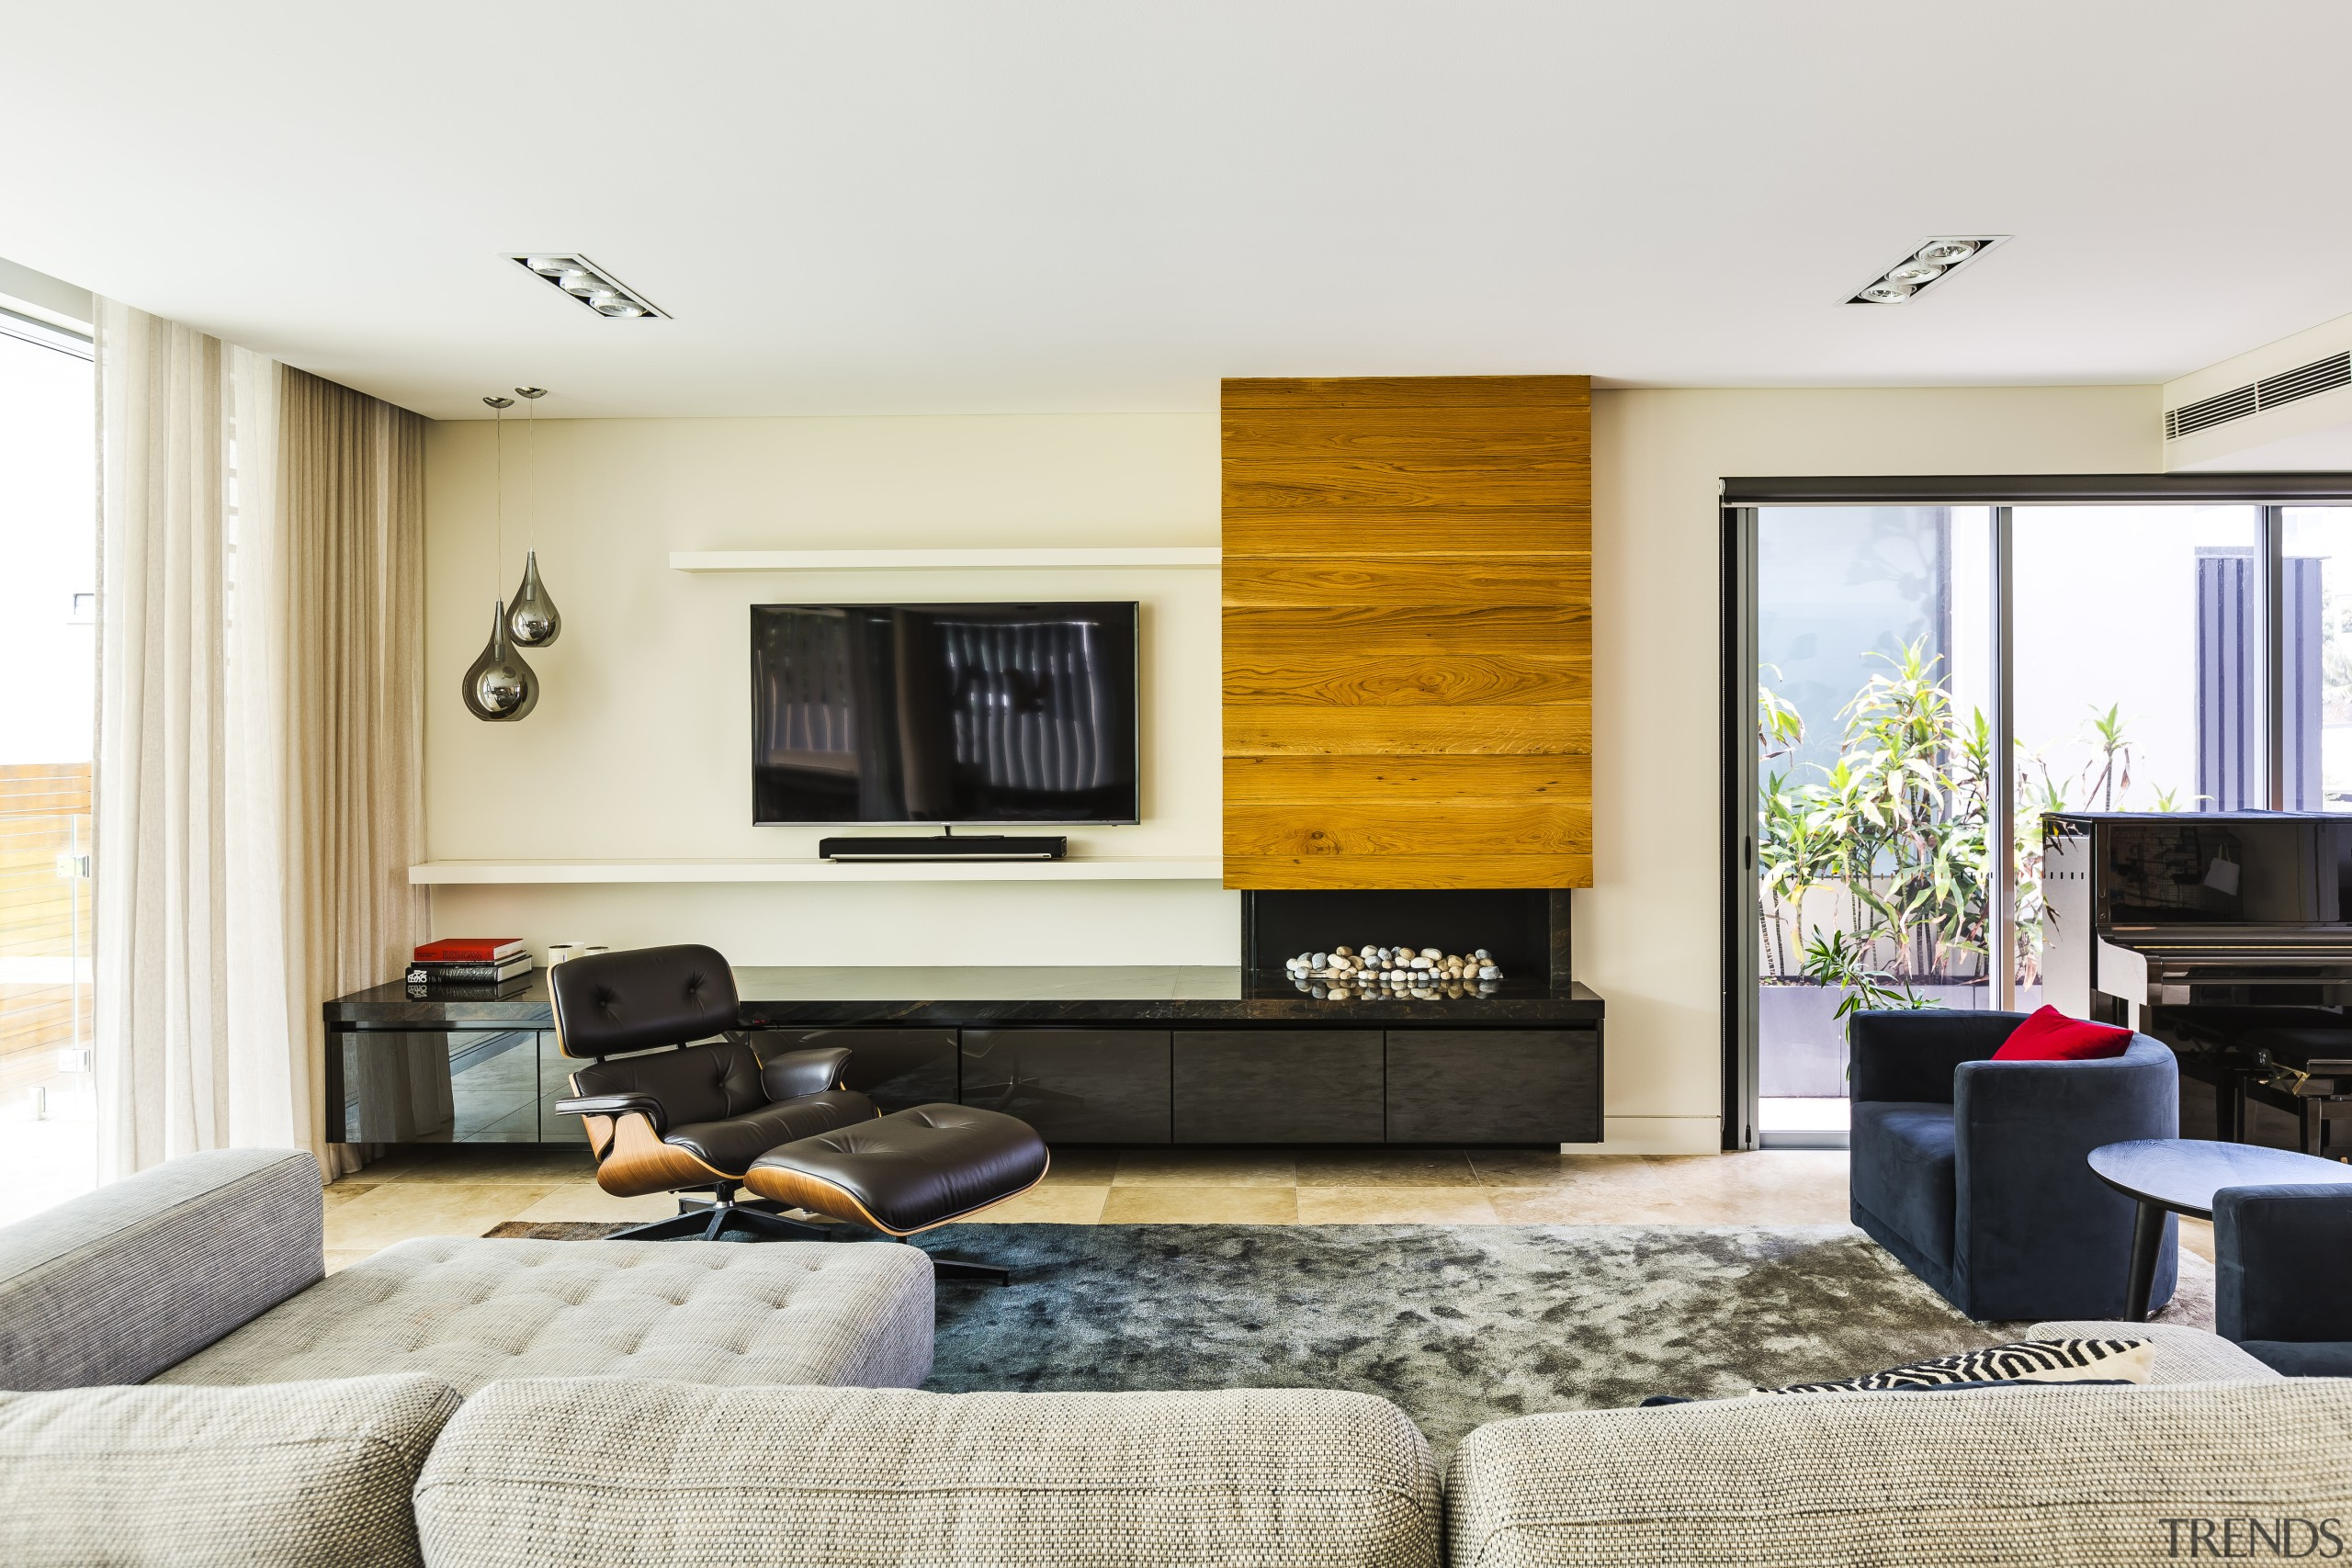 Straight ahead from the entry hall in this interior design, living room, lounge, Giles & Tribe Architecture